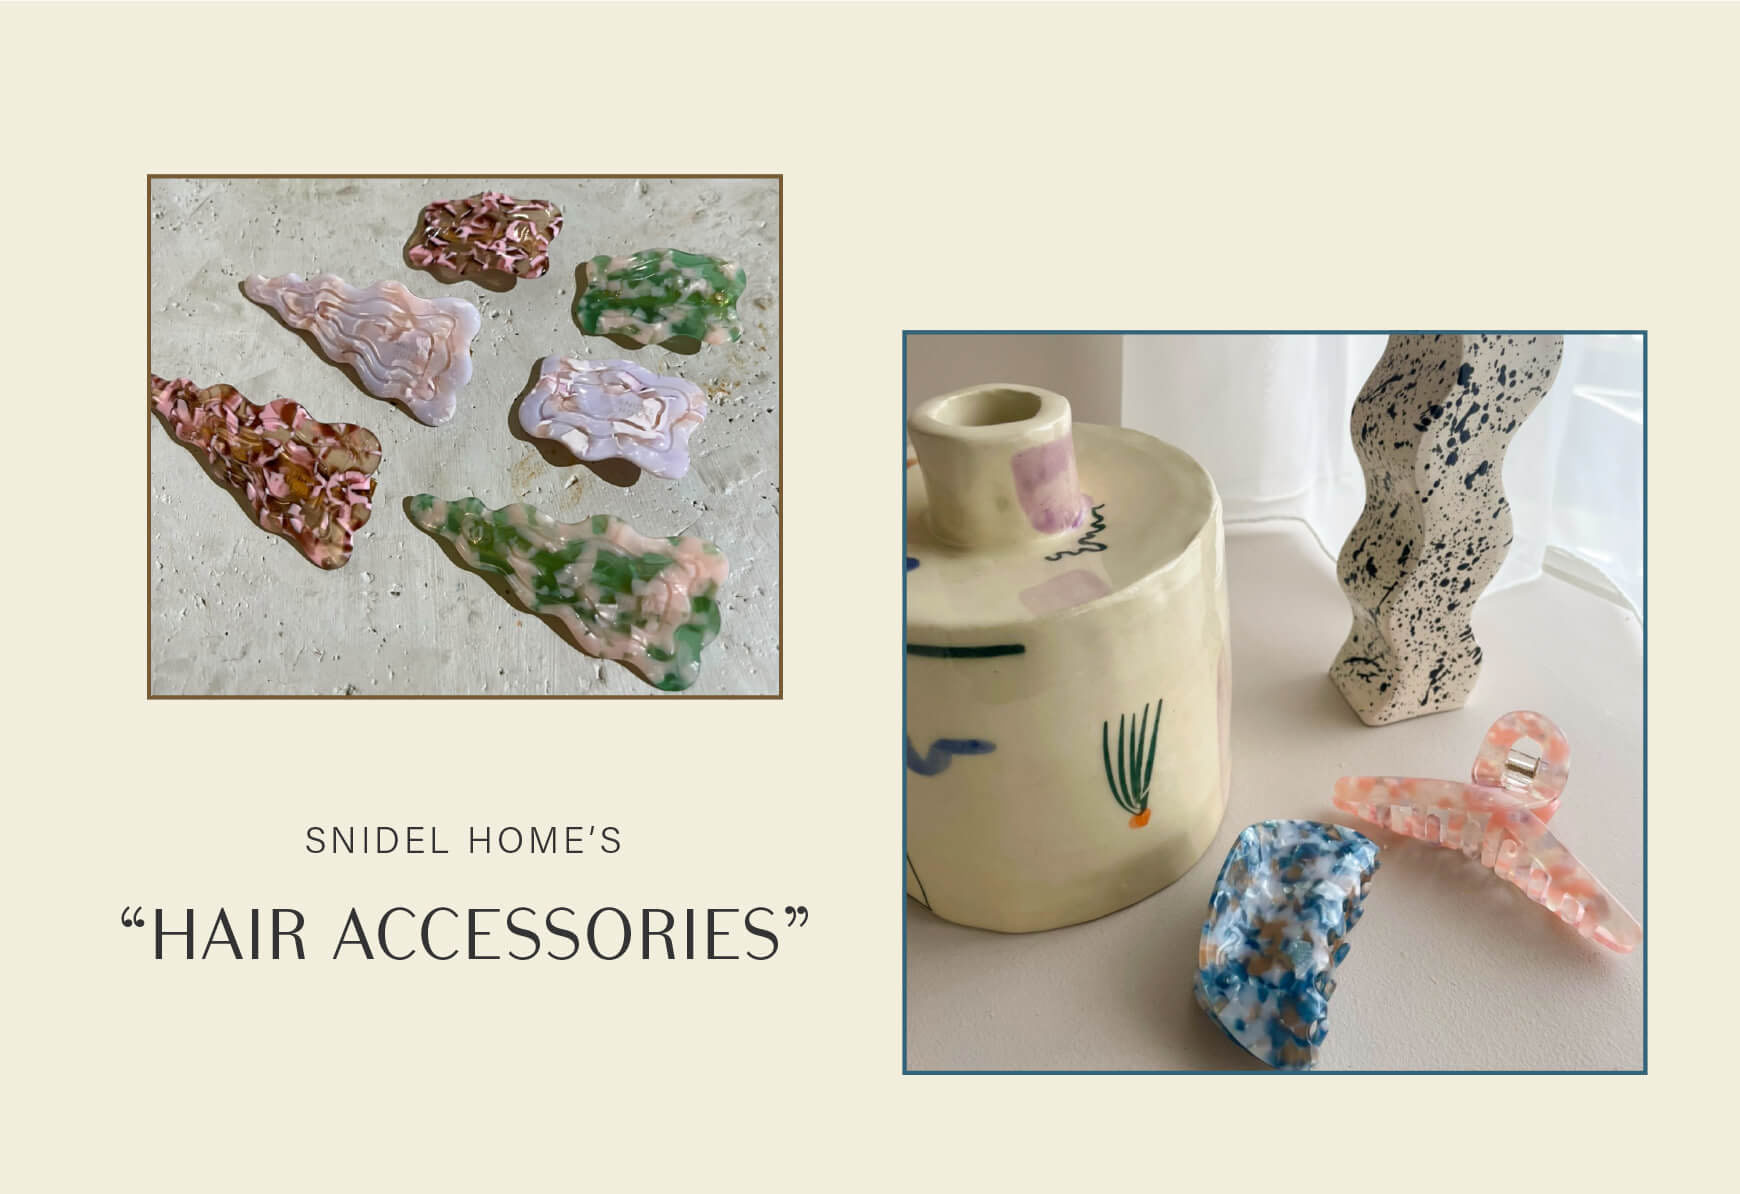 """SNIDEL HOME'S """"HAIR ACCESSORIES"""""""